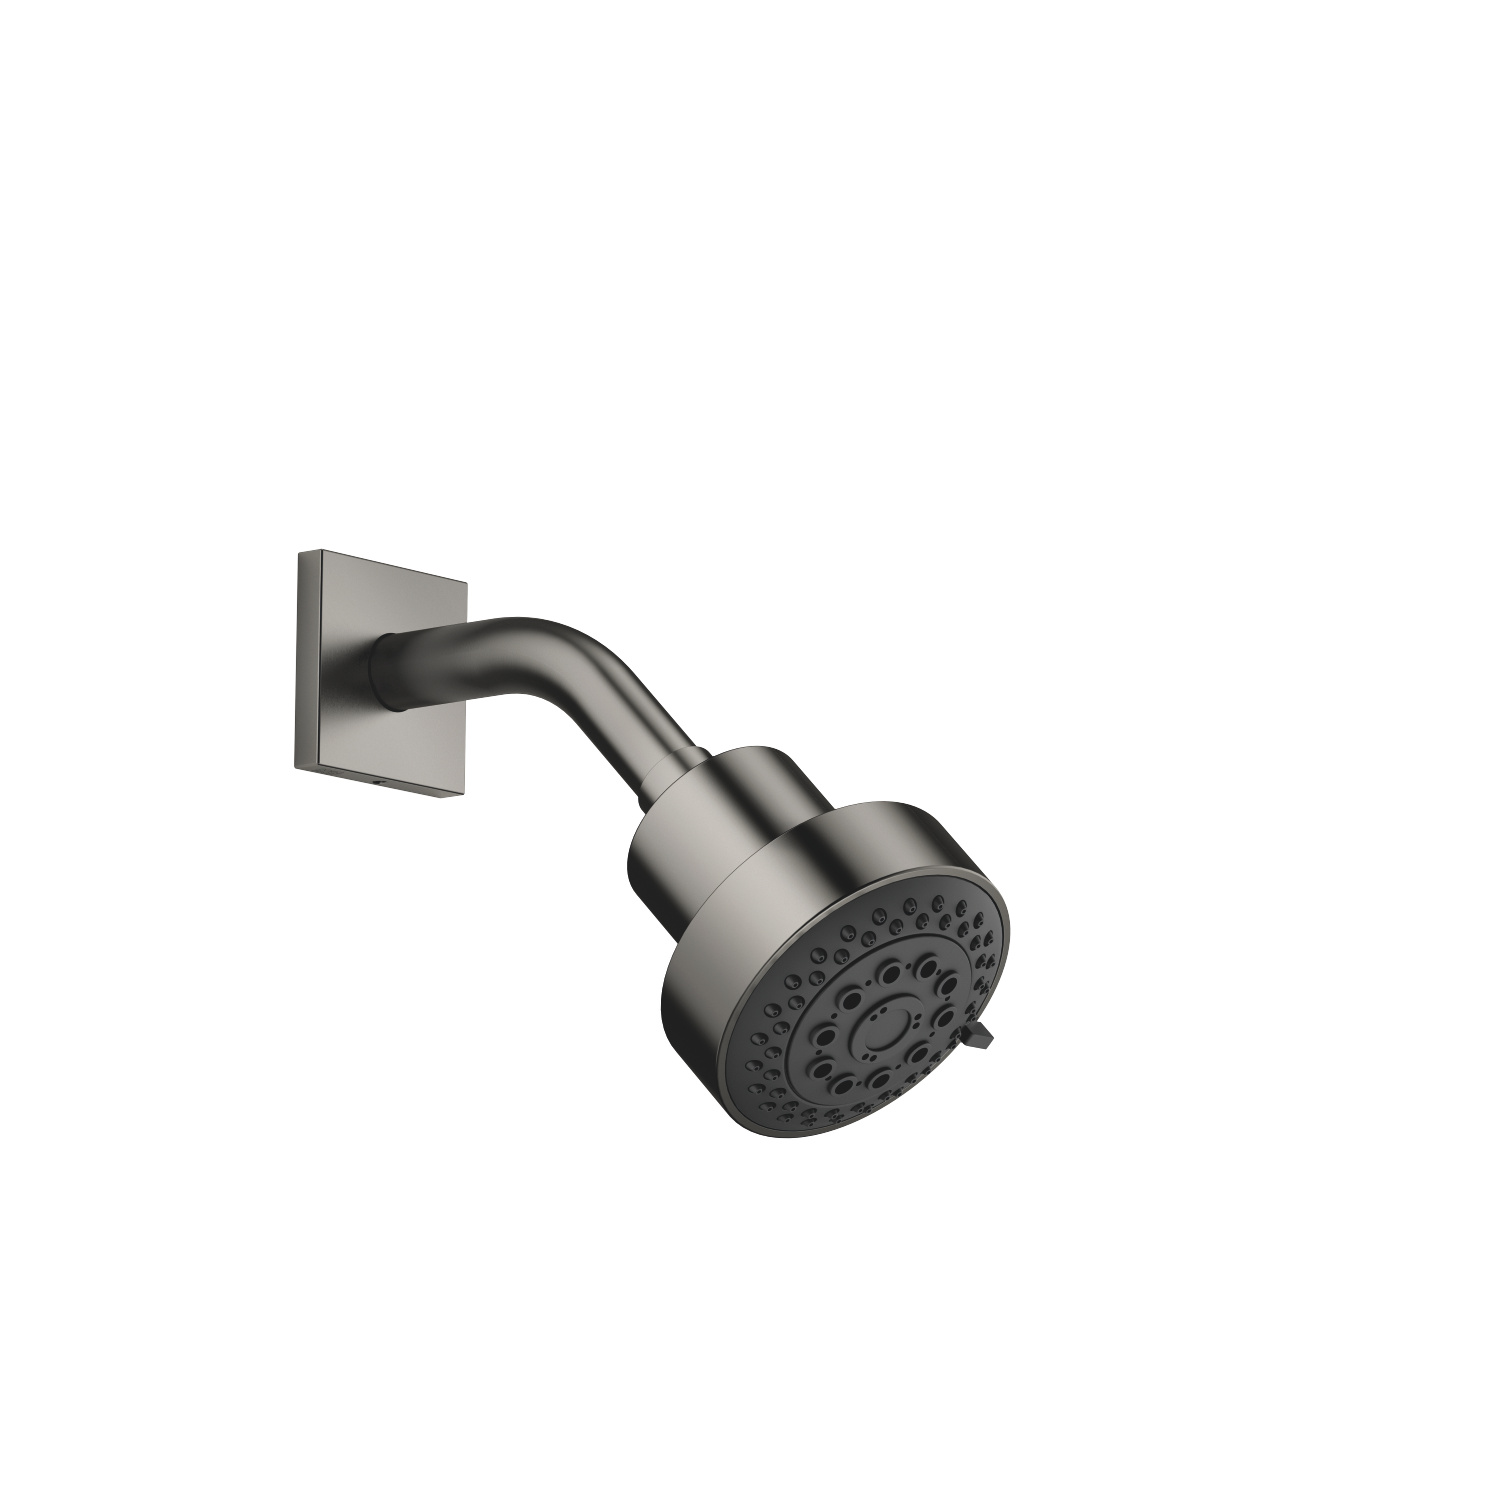 Shower head - Dark Platinum matt - 28 508 980-99